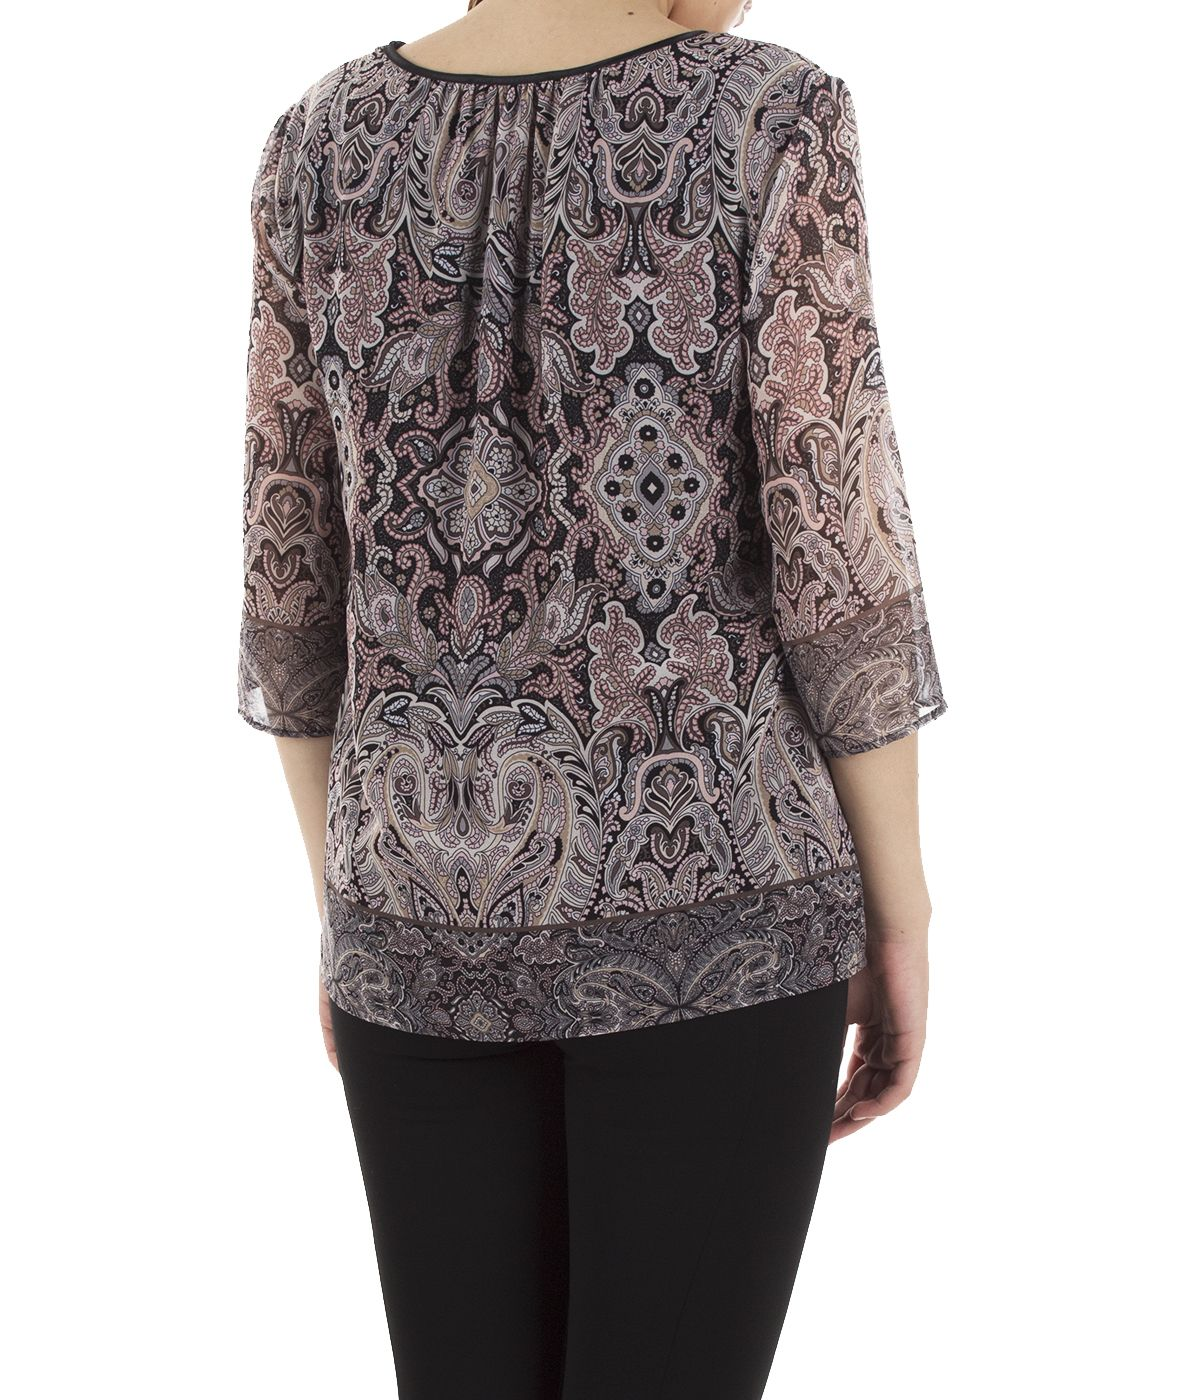 Blouse with 3/4 sleeves and paisley print 3